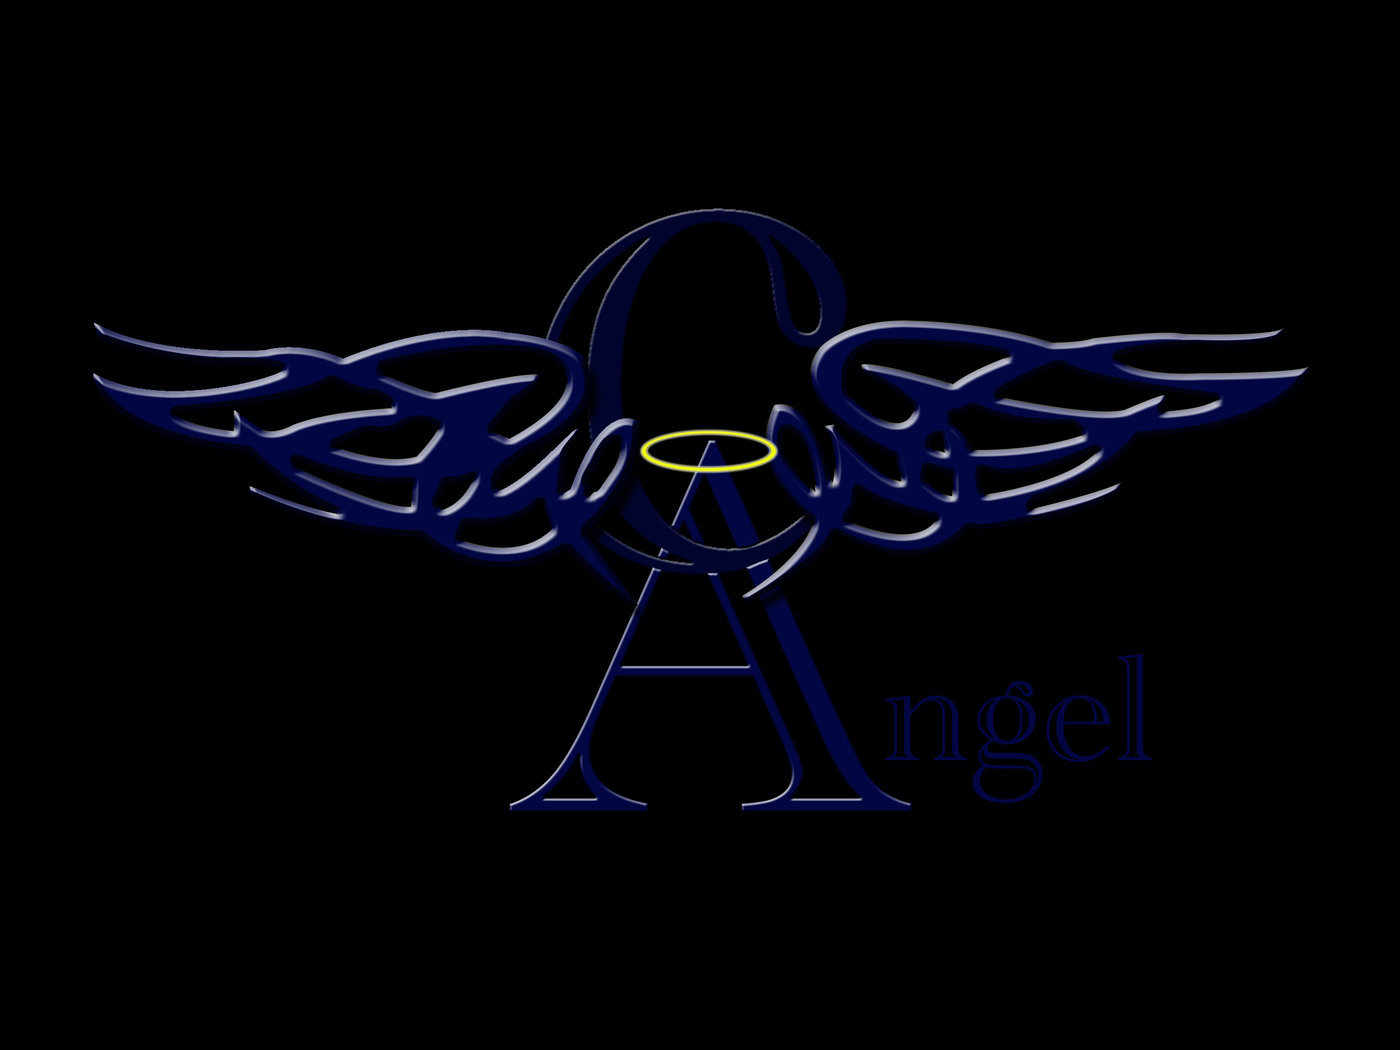 Logo by erica gomez at coroflot criss angel logo made in illustrator then brought into photoshop for color and effects biocorpaavc